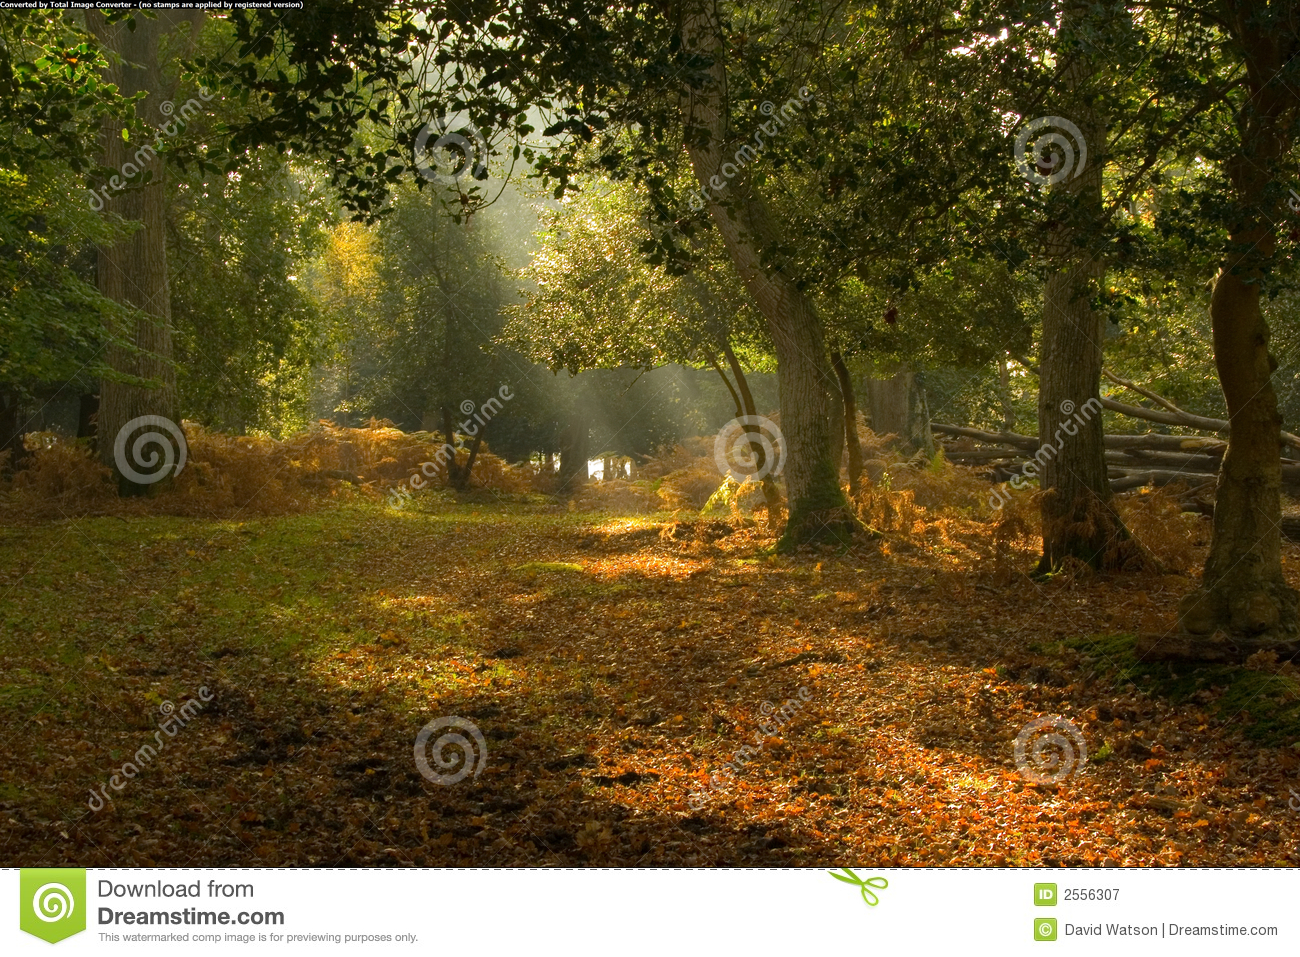 Picturesque clearing in forest